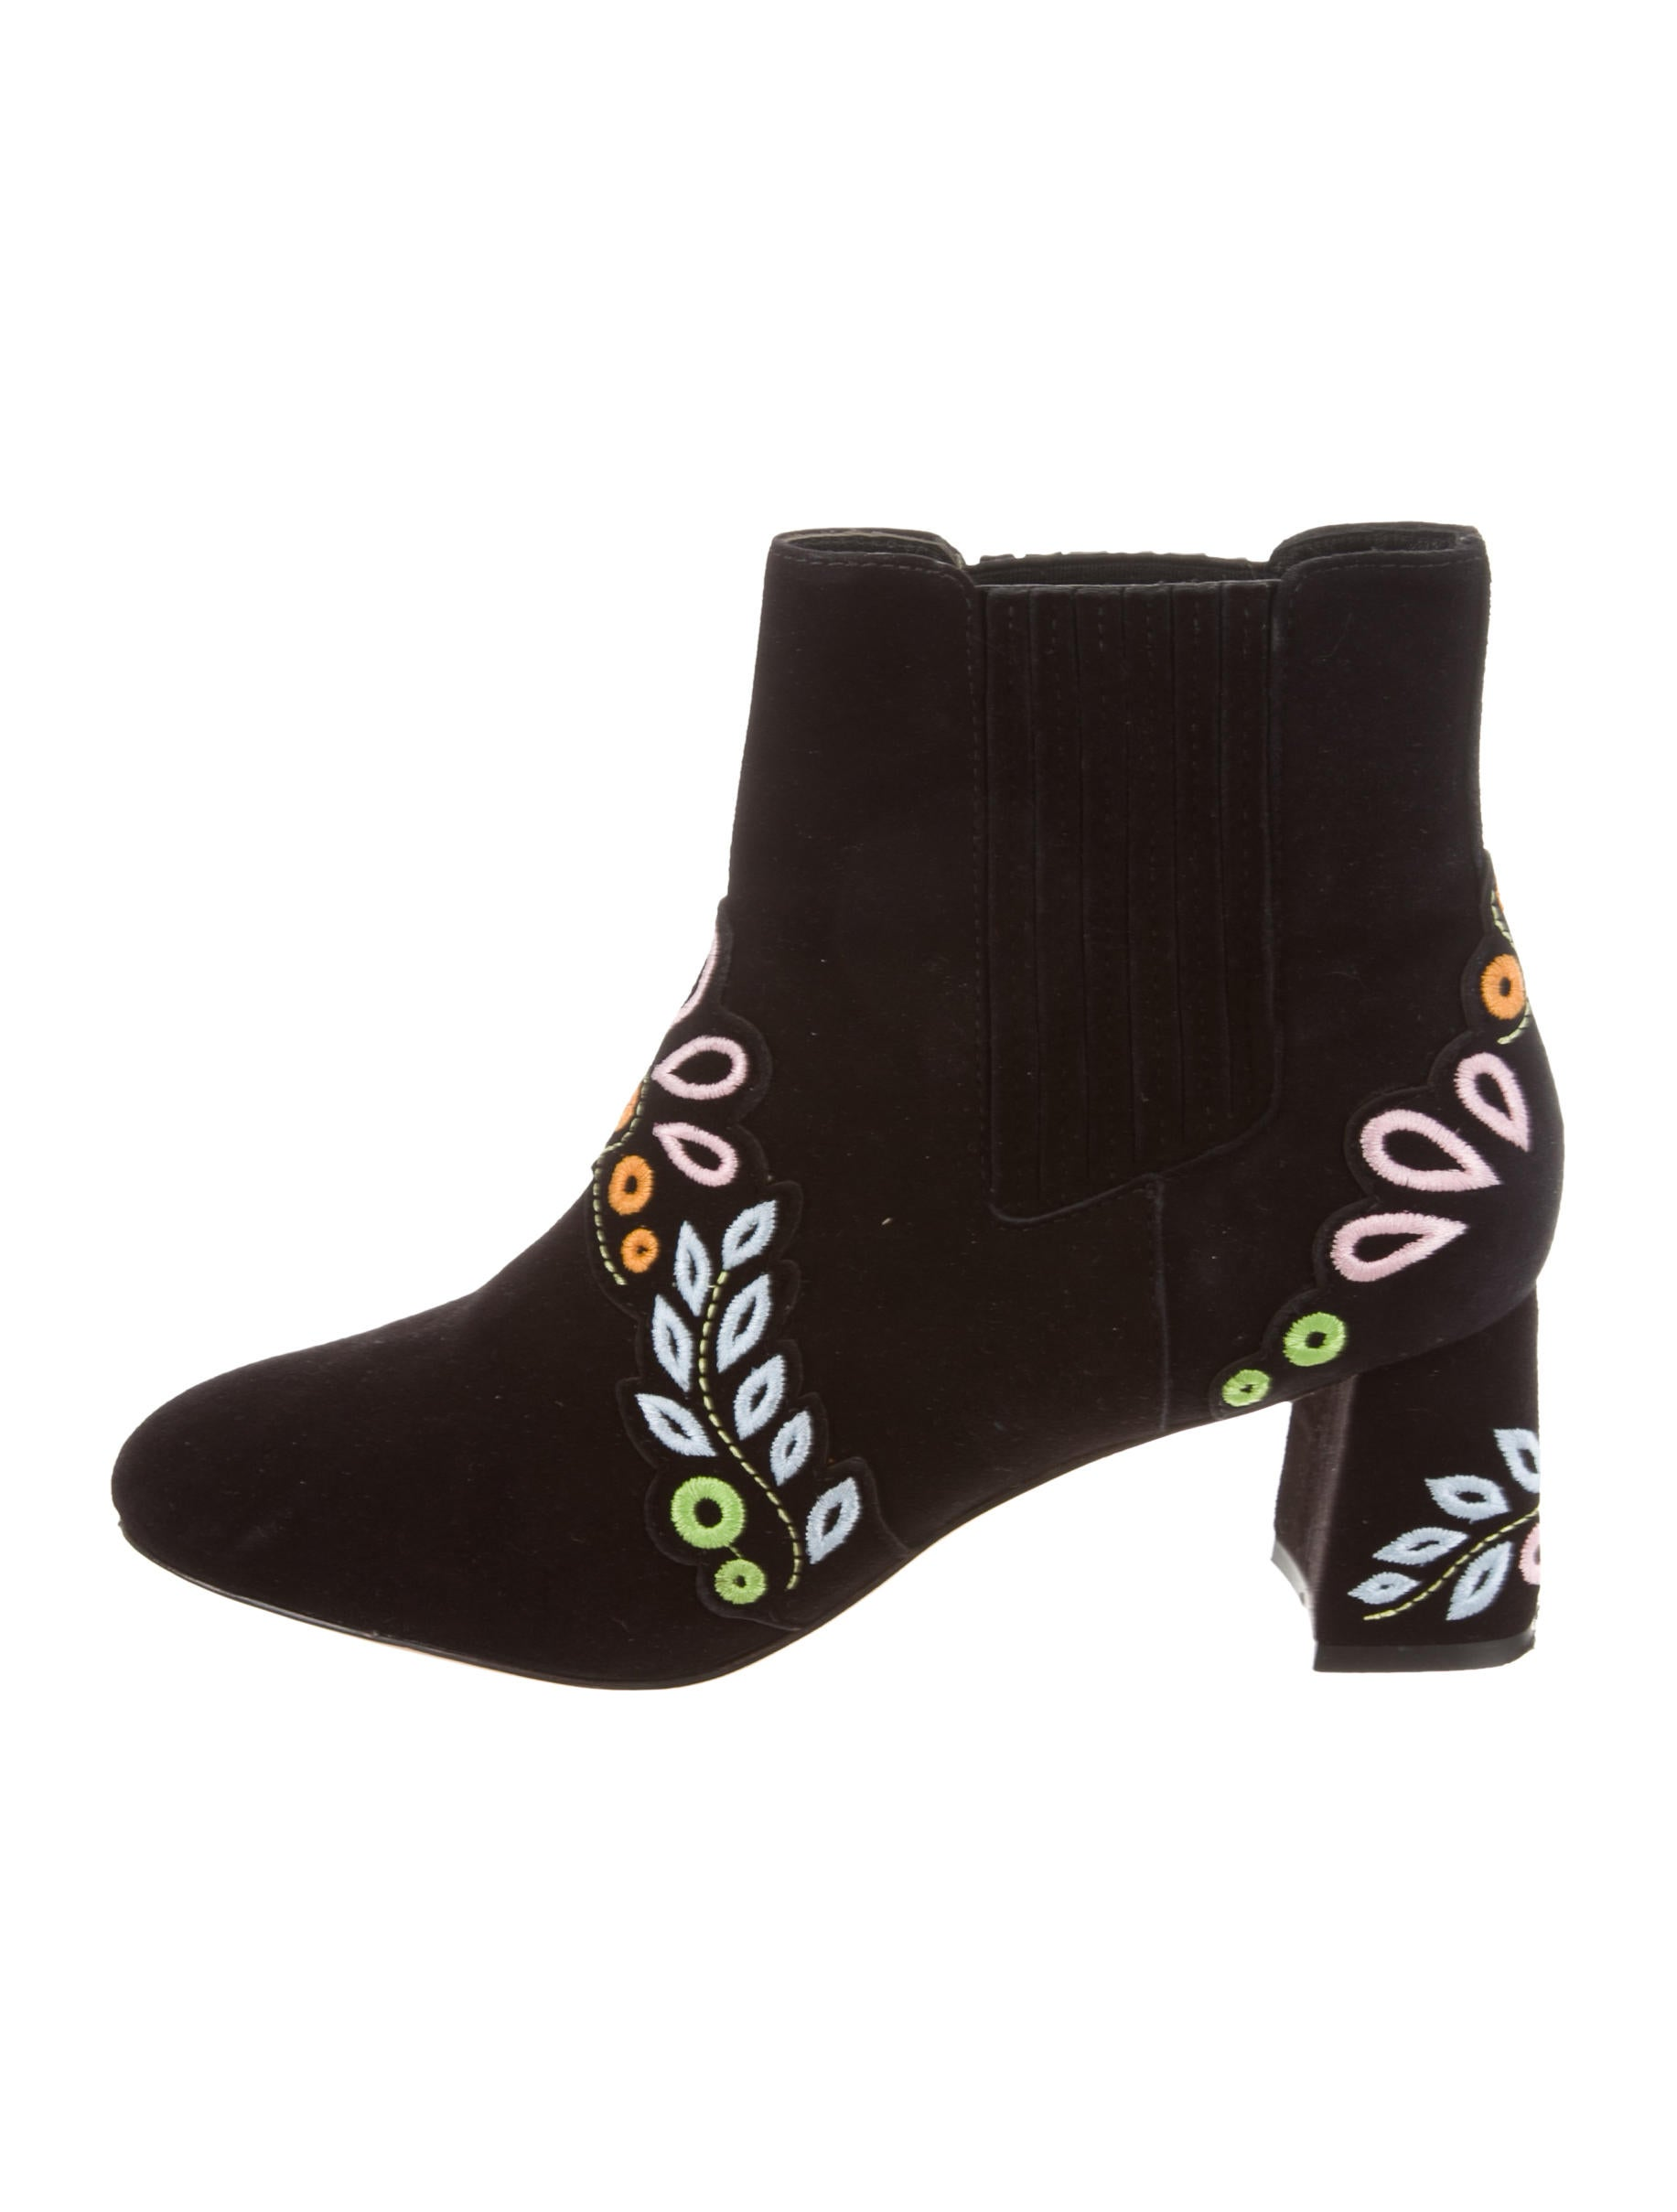 Sophia Webster Embroidered Ankle Boots cheap amazon very cheap for sale cheap good selling free shipping sast jbFSHd6